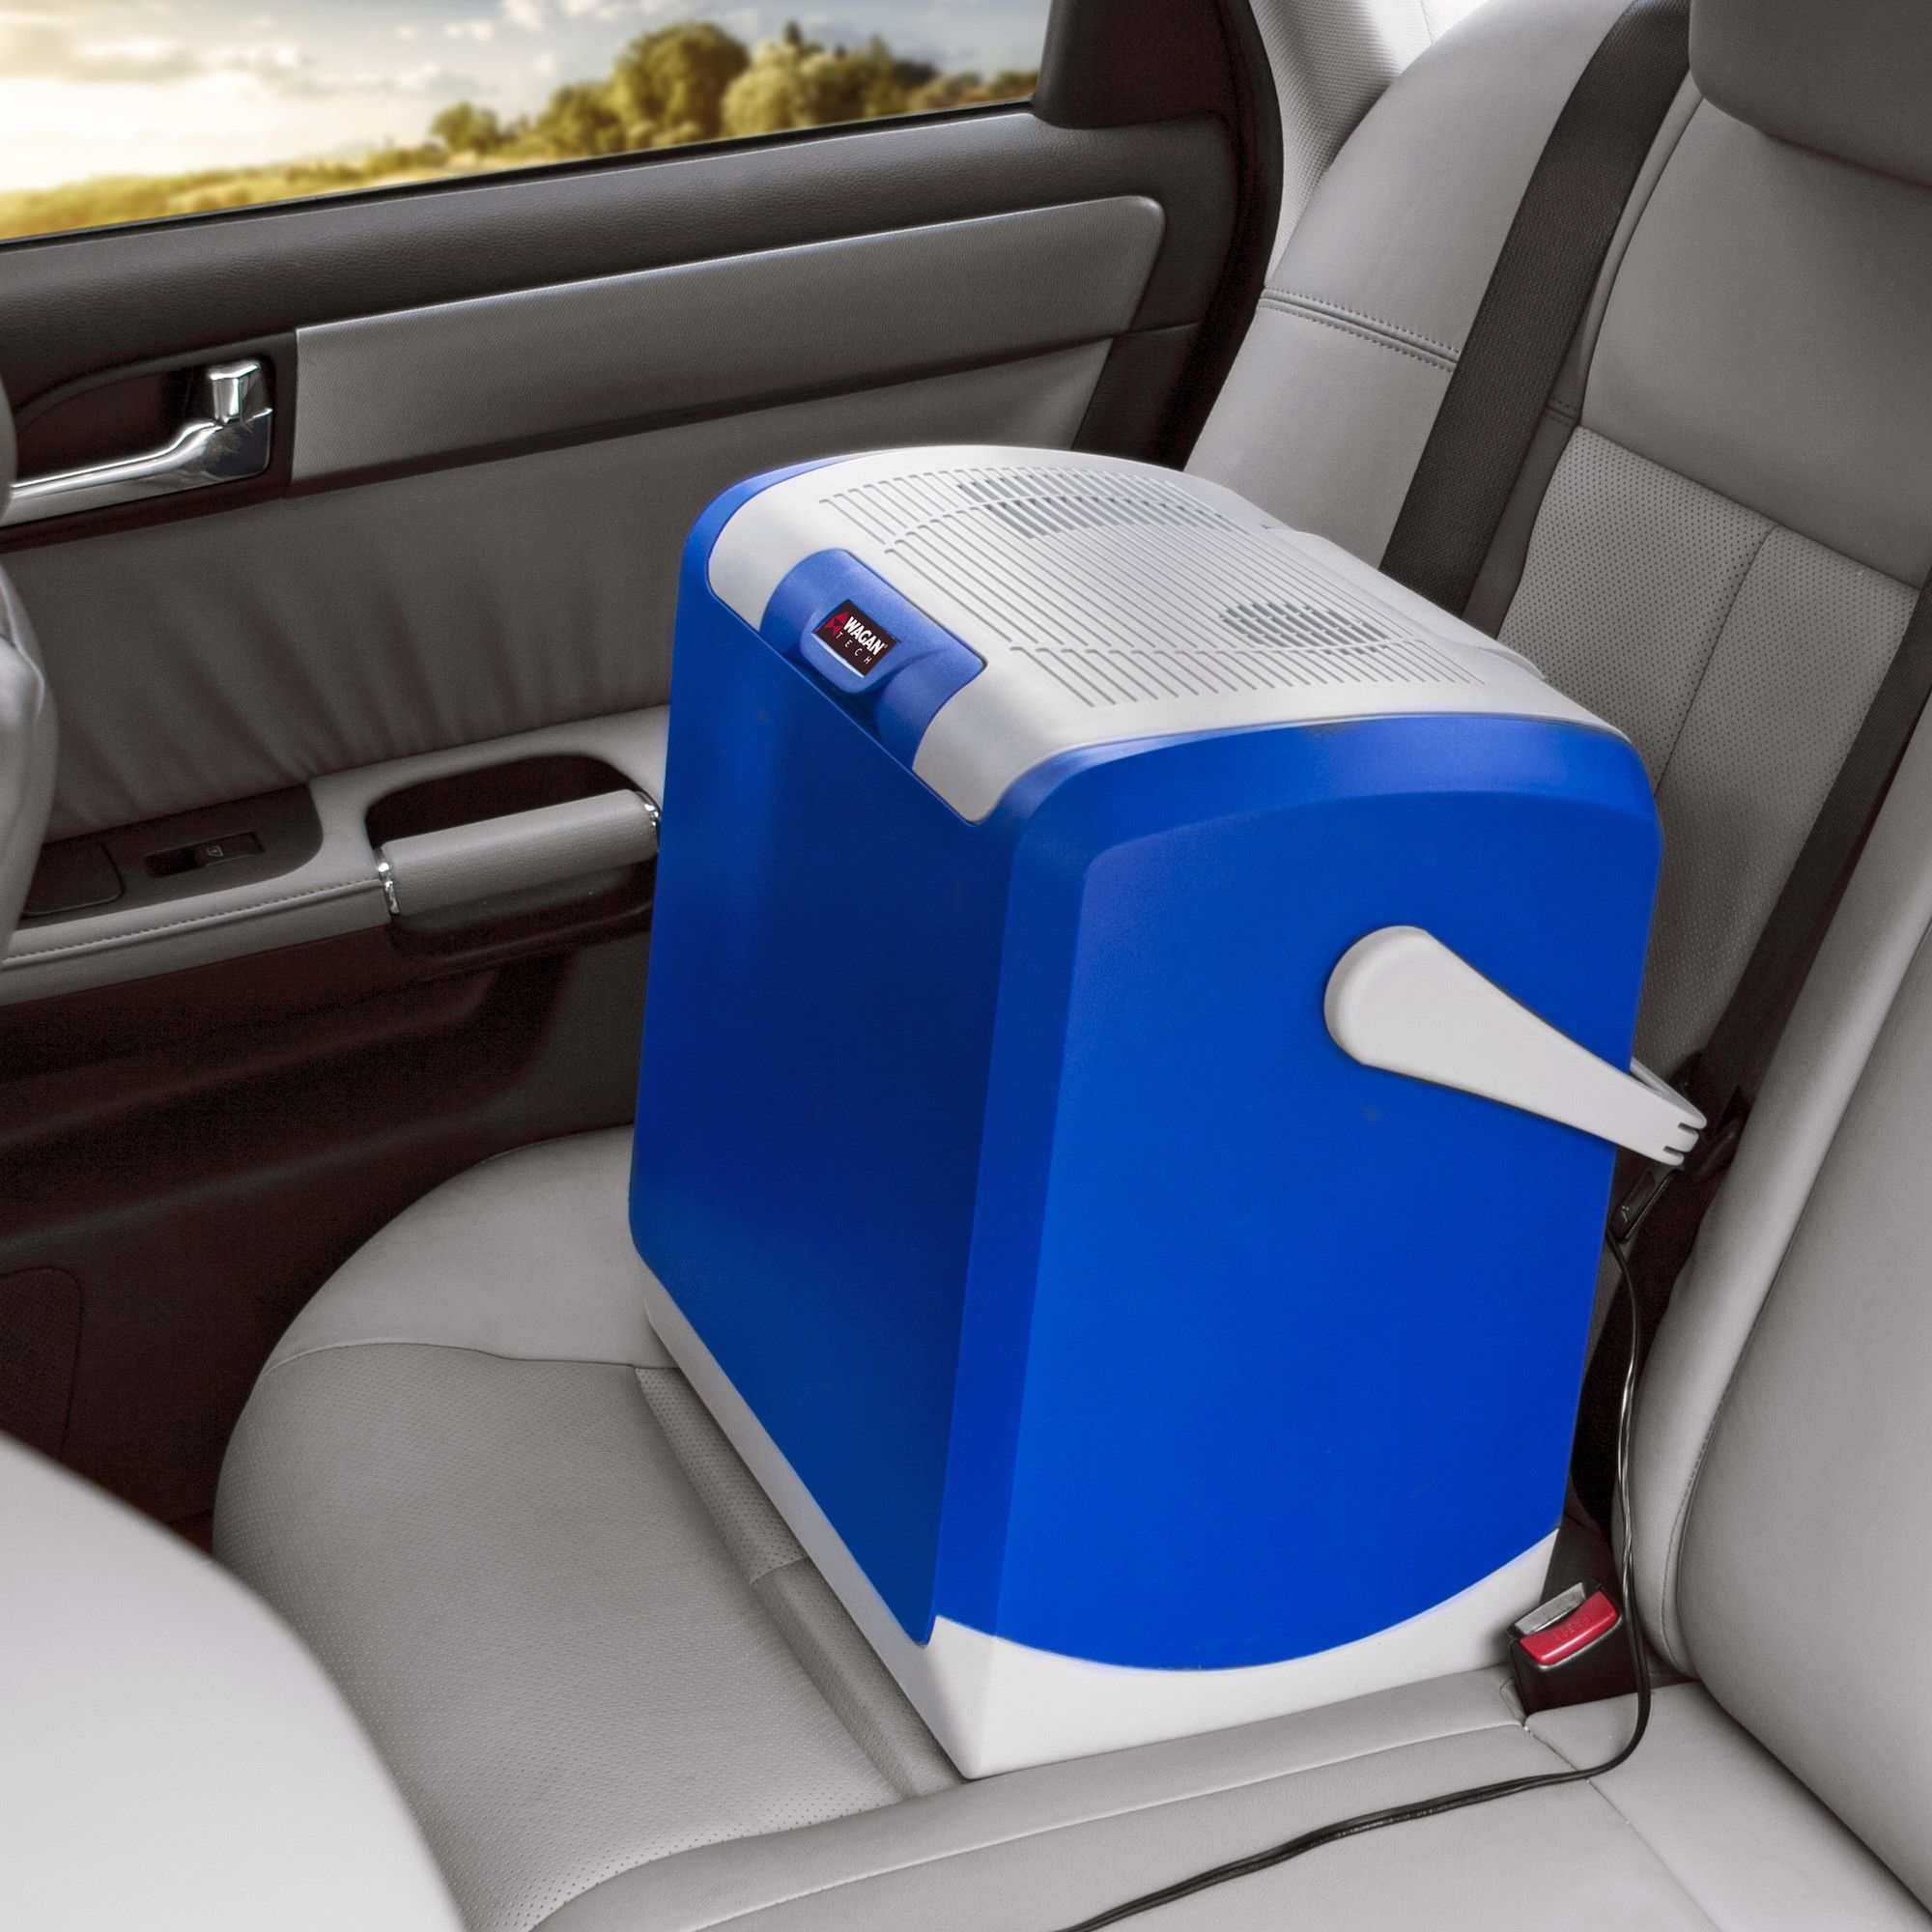 253 qt wagan thermo electric cooler car cooler